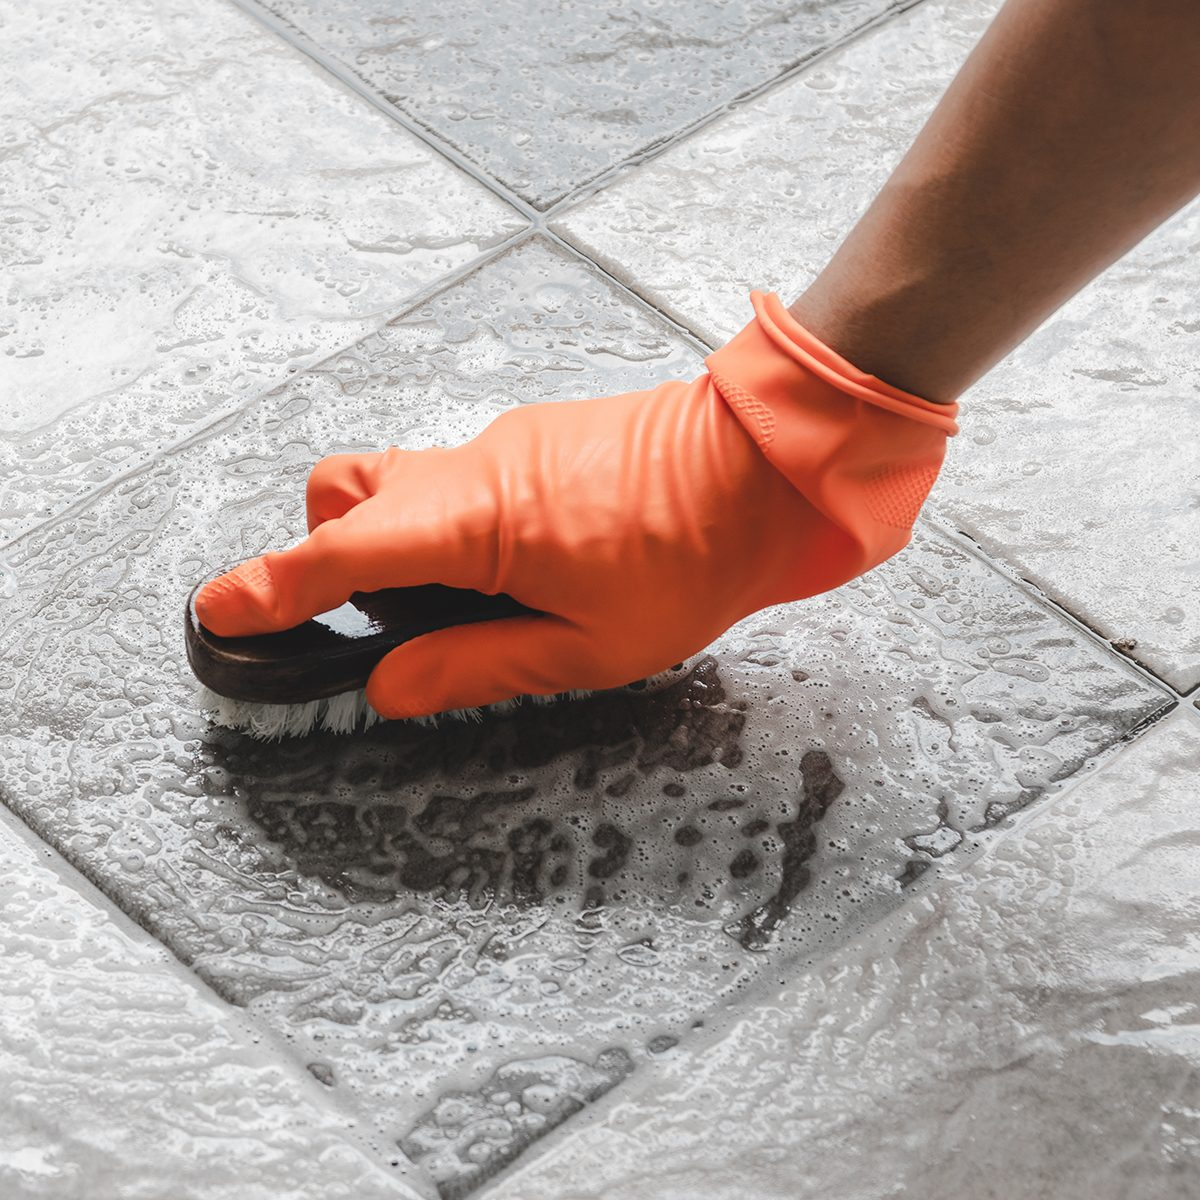 Hand of man wearing orange rubber gloves is used to convert scrub cleaning on the tile floor.